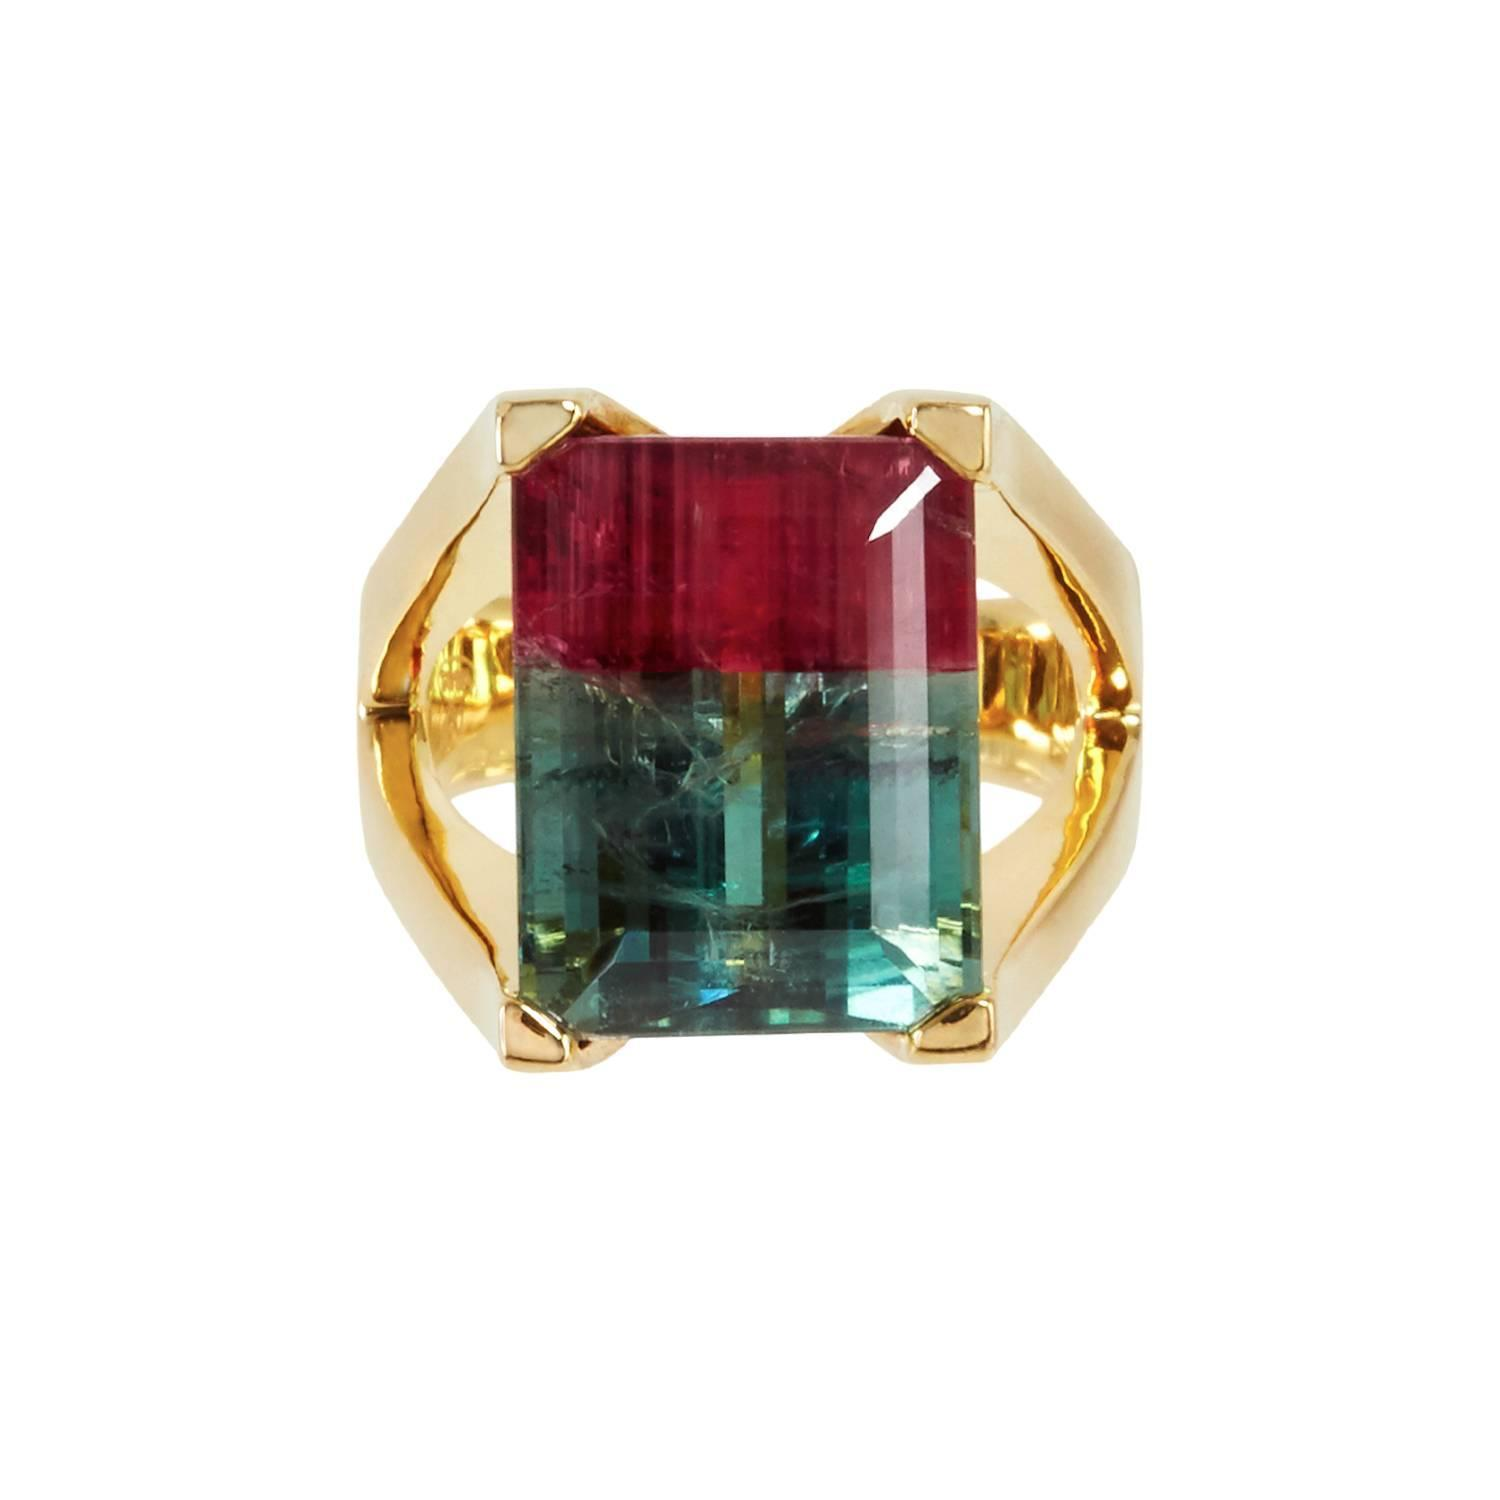 Watermelon Tourmaline Mahjong Ring For Sale At 1stdibs